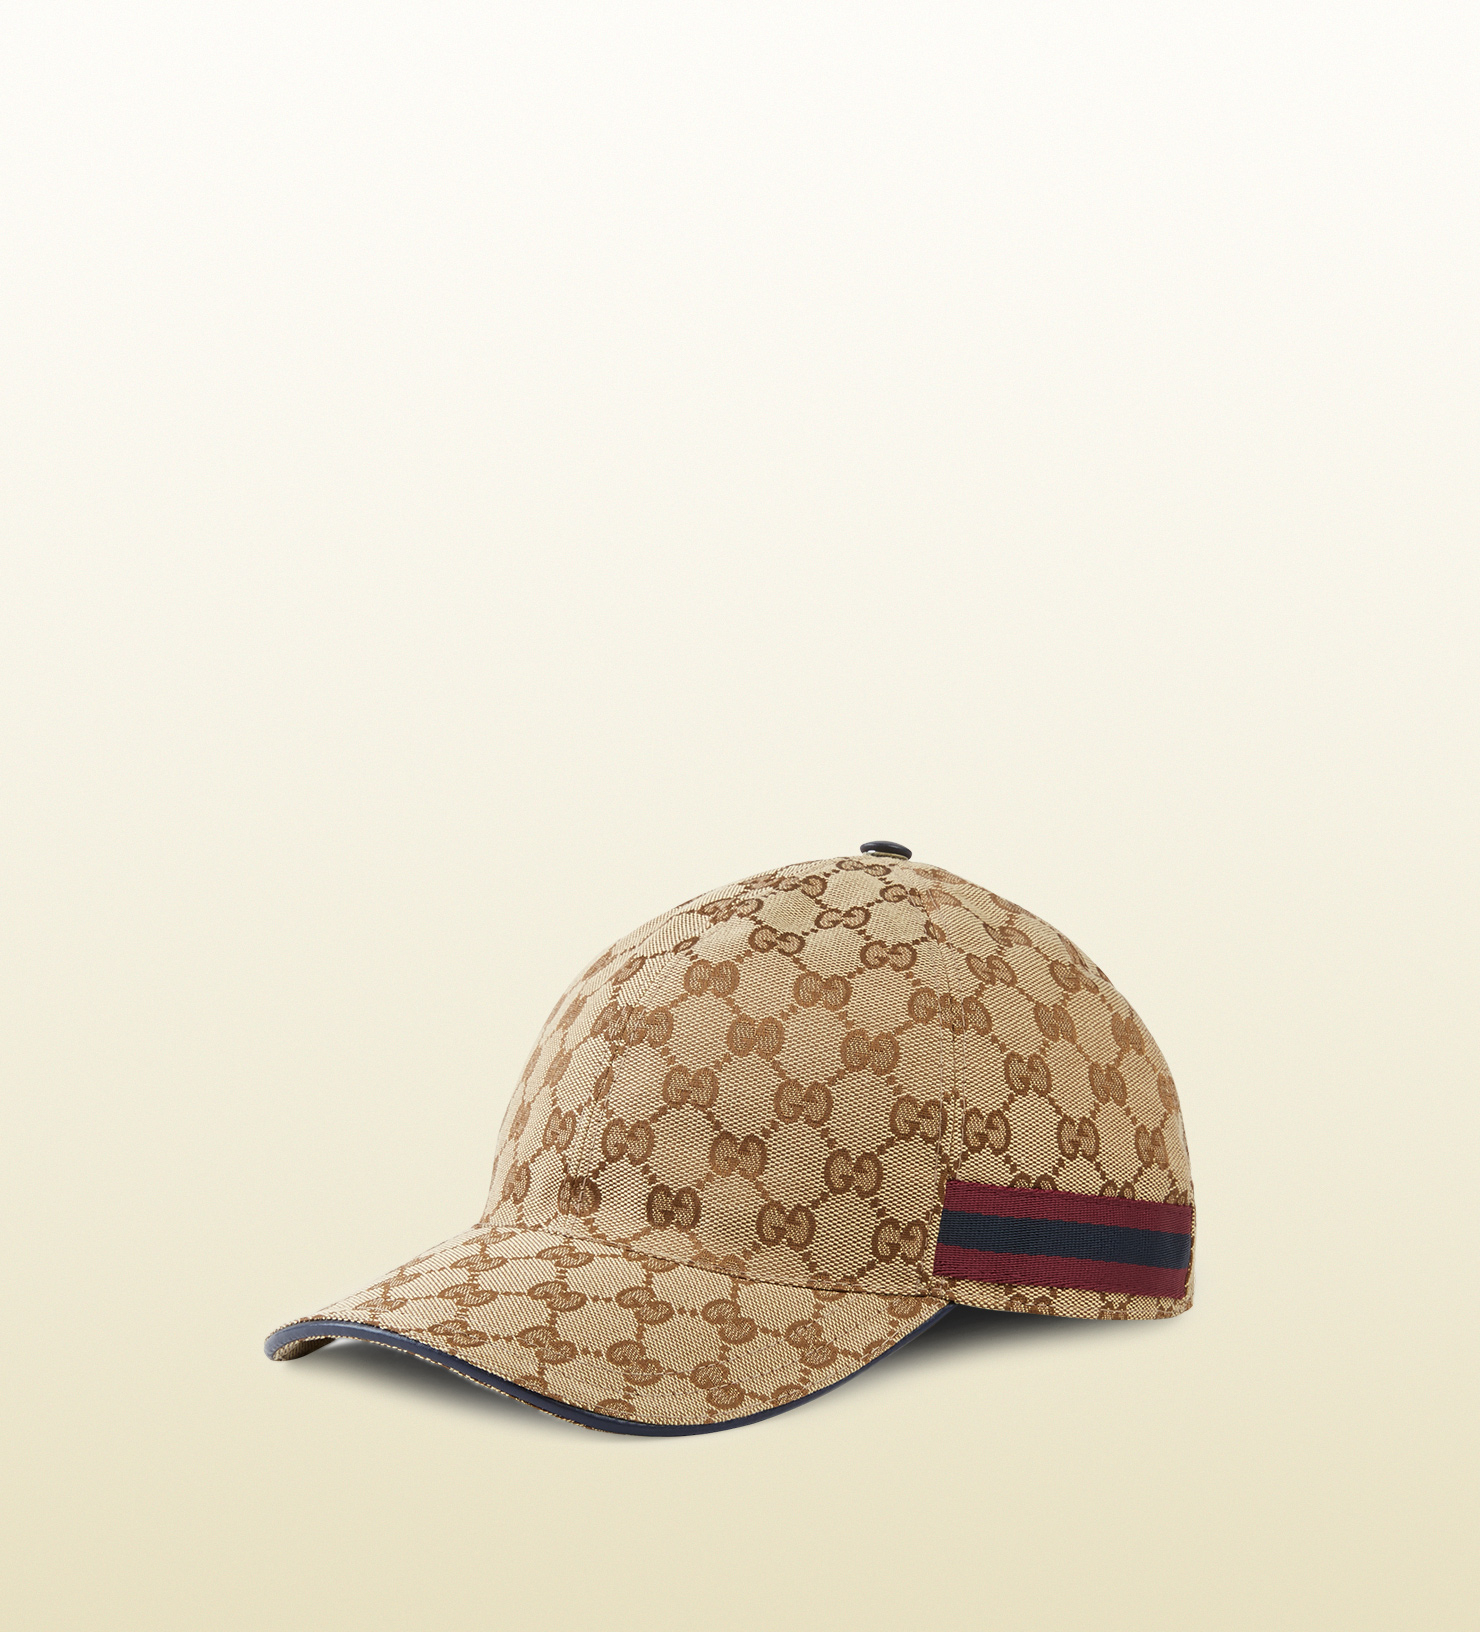 1ba3700f6d0507 Lyst - Gucci Original Gg Baseball Hat With Web Detail in Natural for Men